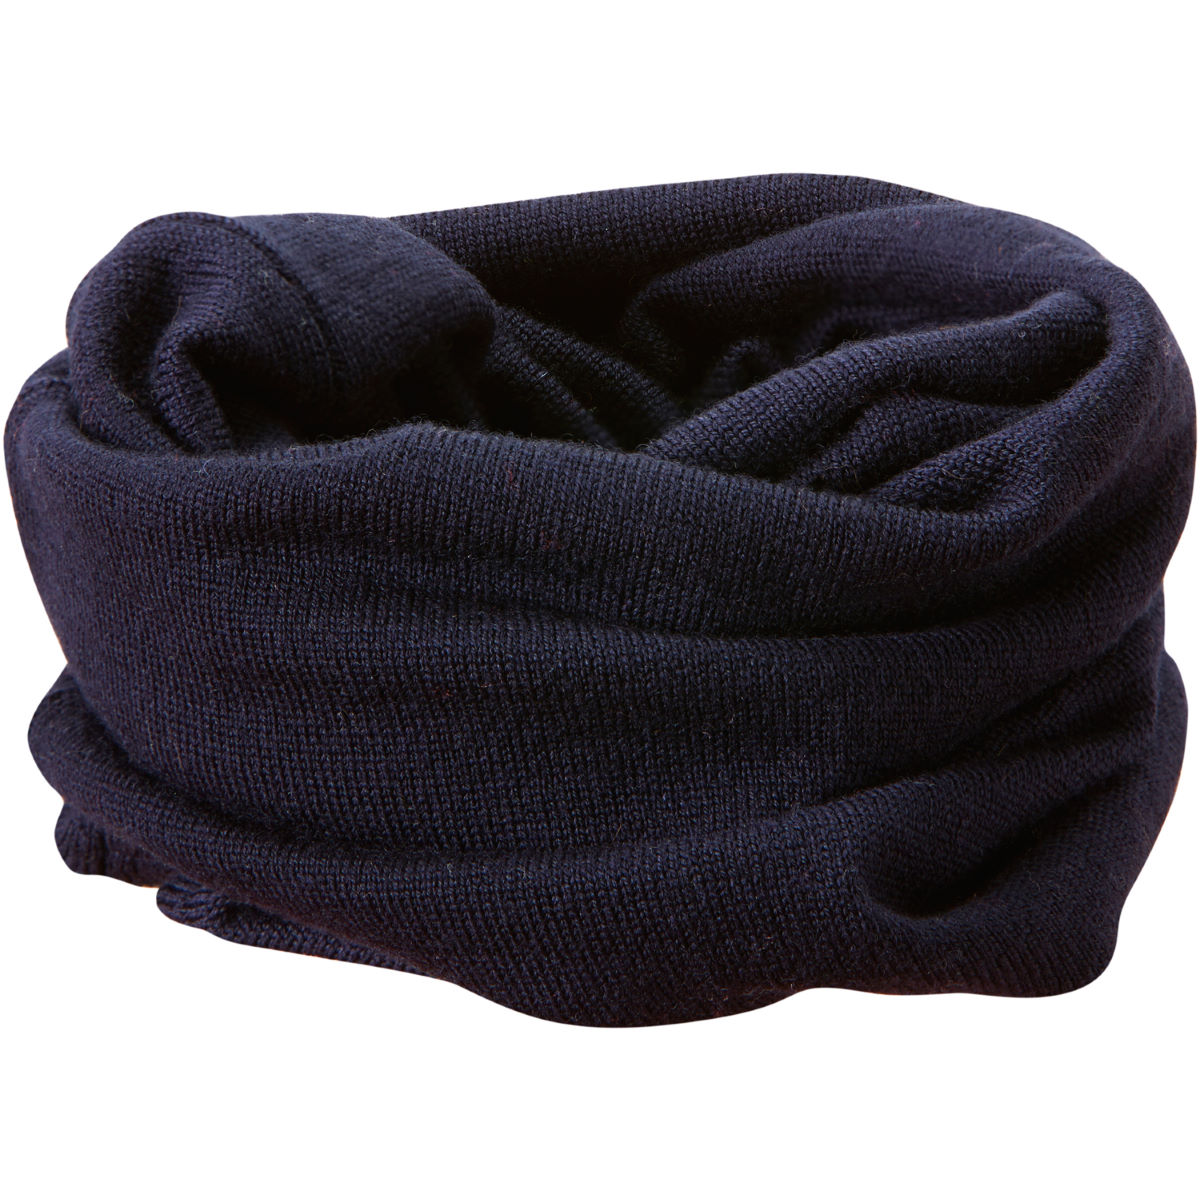 Cache-cou Femme FINDRA Betty - Taille unique Dark Navy Couvre-cous